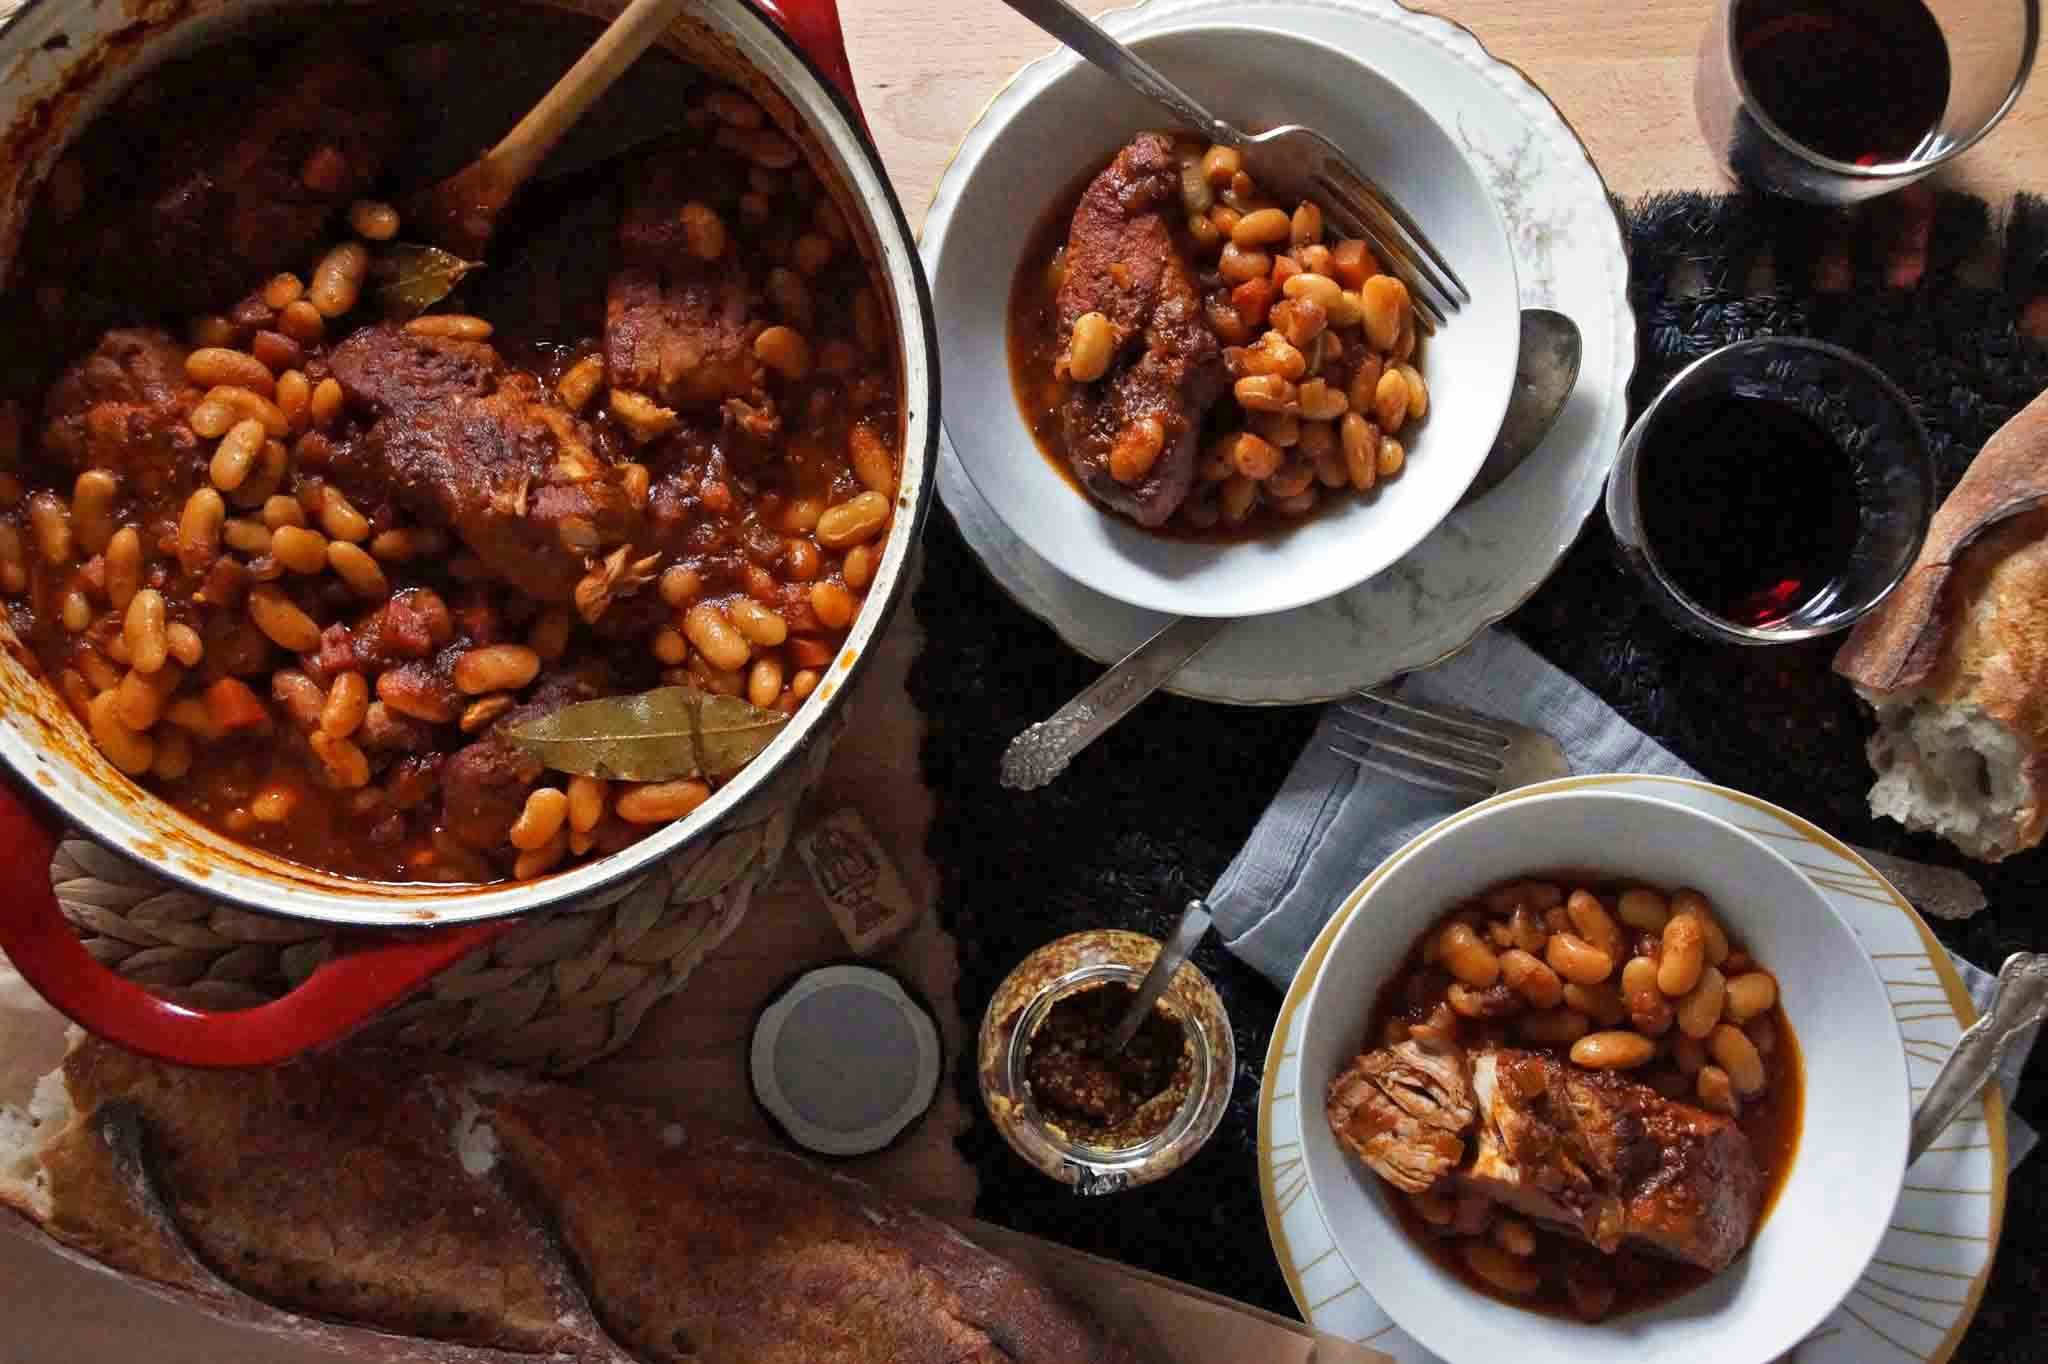 Cider-Braised-Pork-Ribs-and-Beans.jpg